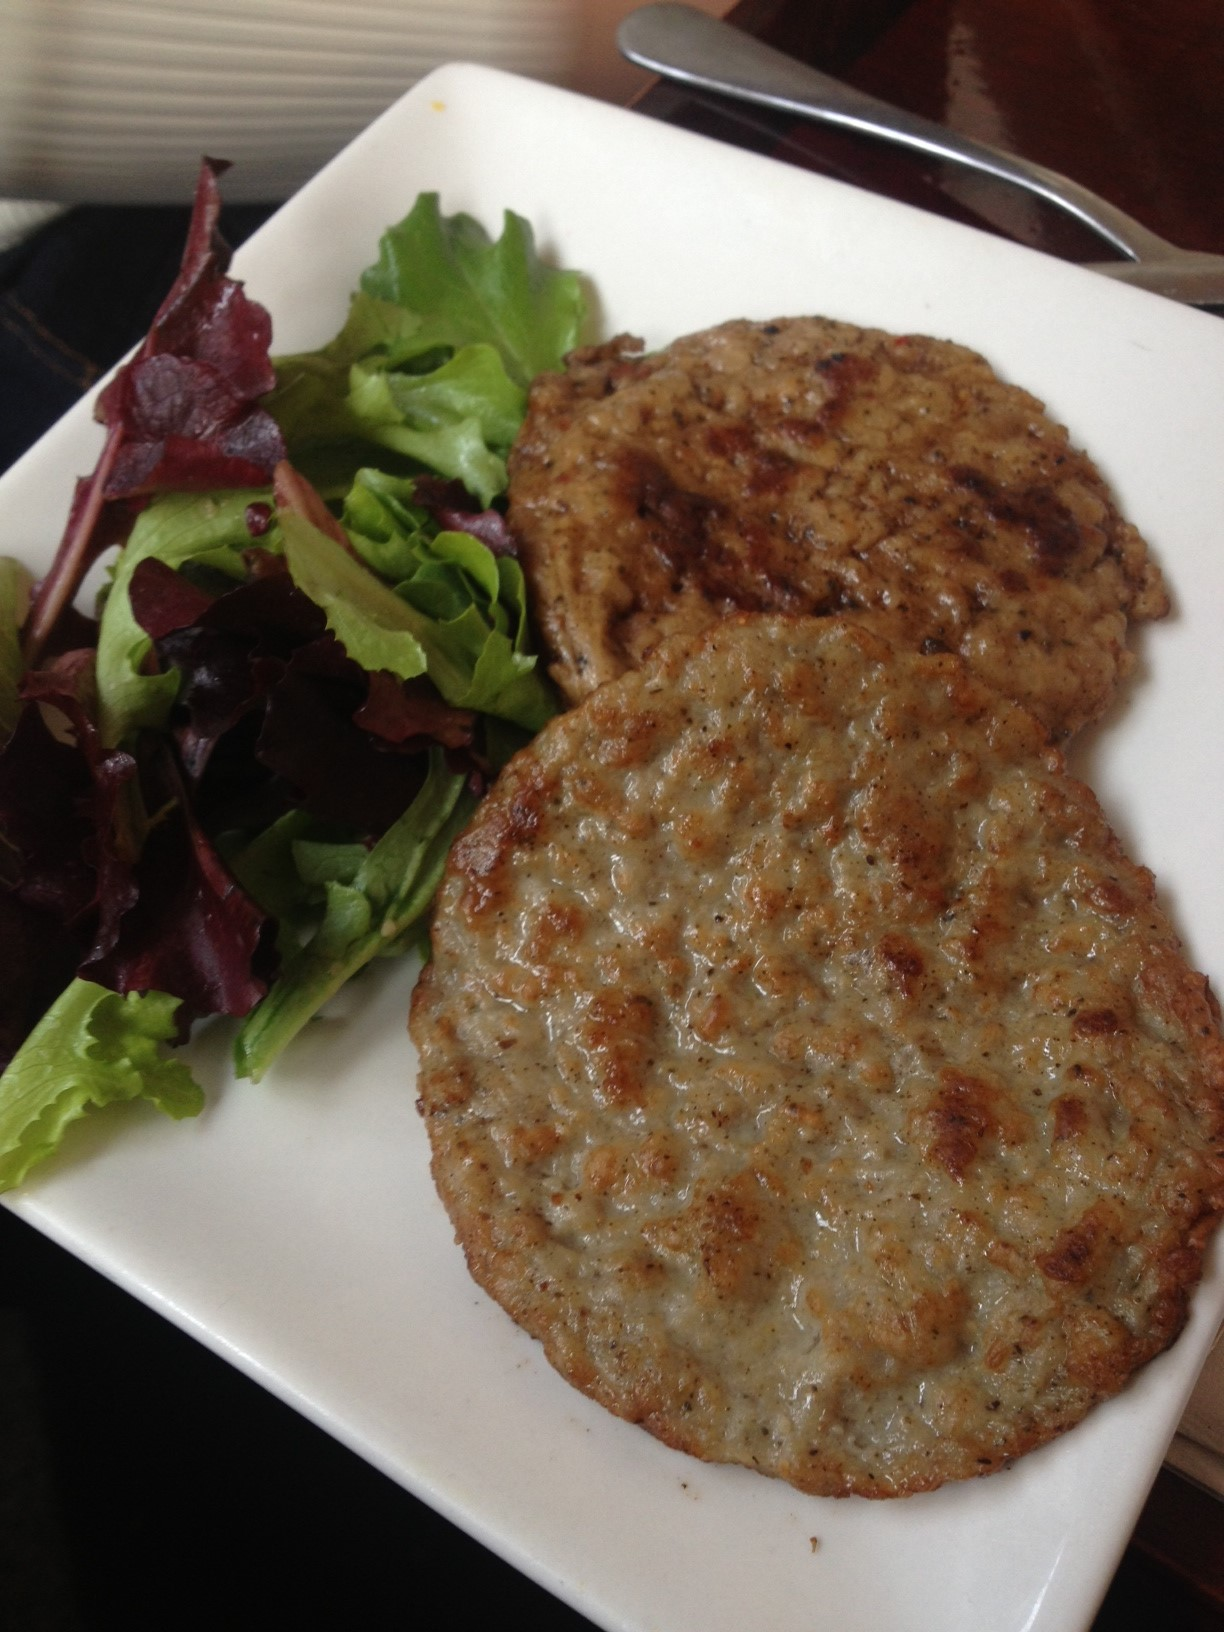 Check out these HUGE sausage patties!